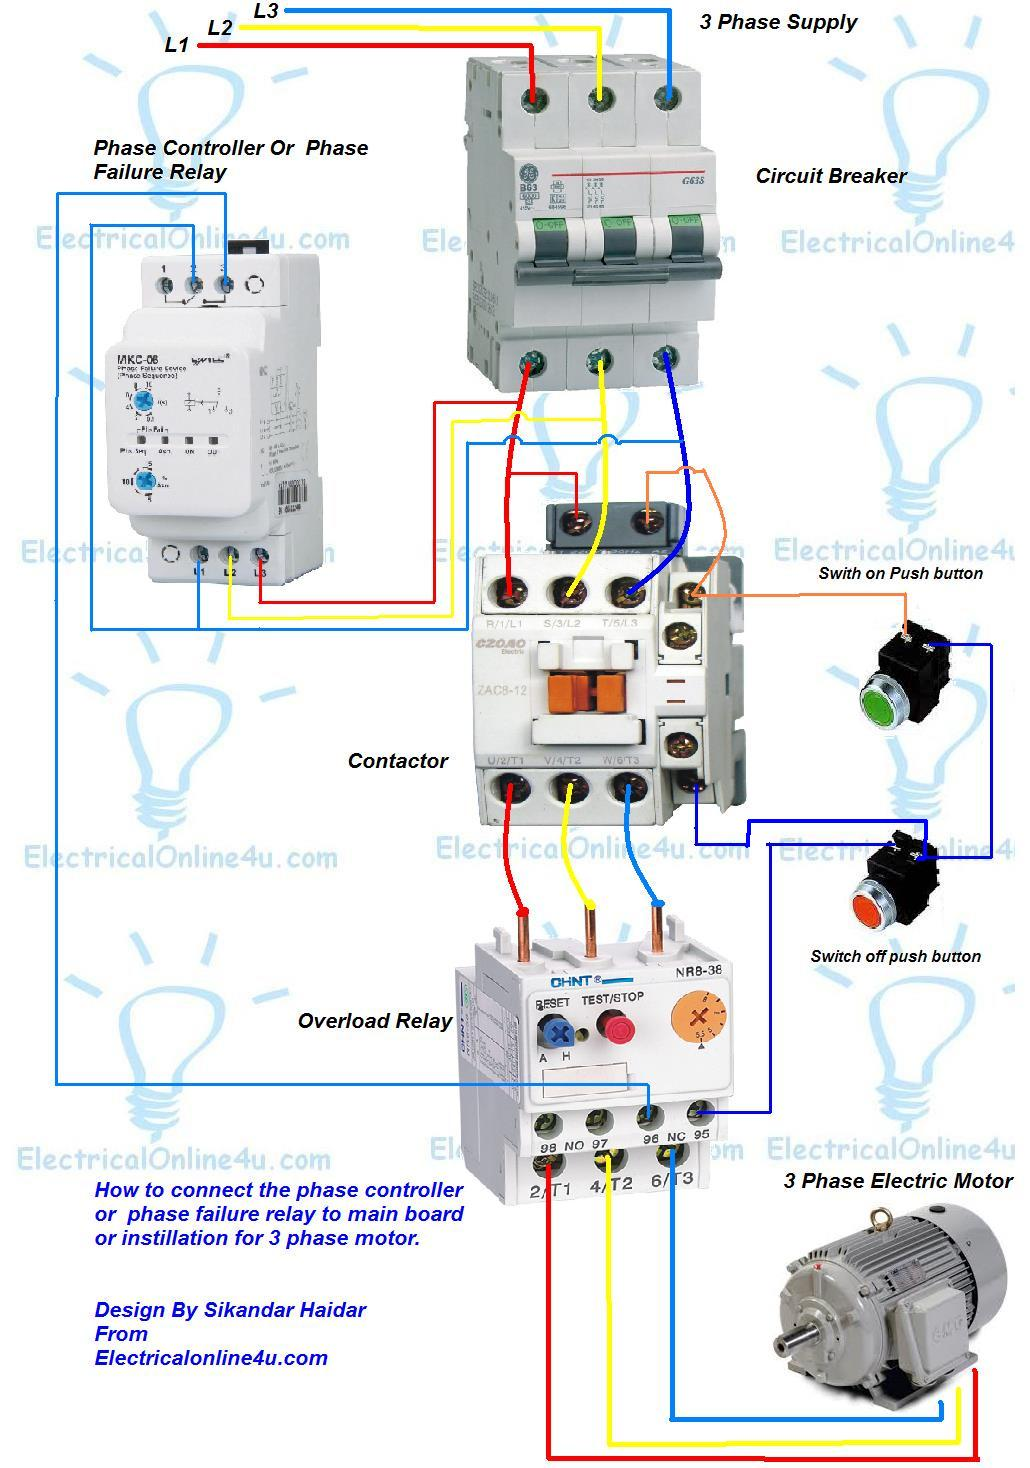 Phase%2Bfailure%2Brelay%2B %2Bphase%2Bcontroller%2Binstilaion%2Bin%2B3%2Bphase%2BMain%2Bboard%2Bor%2Bfor%2B3%2Bphase%2Bmotor phase controller wiring phase failure relay diagram electrical contactor wiring diagram at virtualis.co